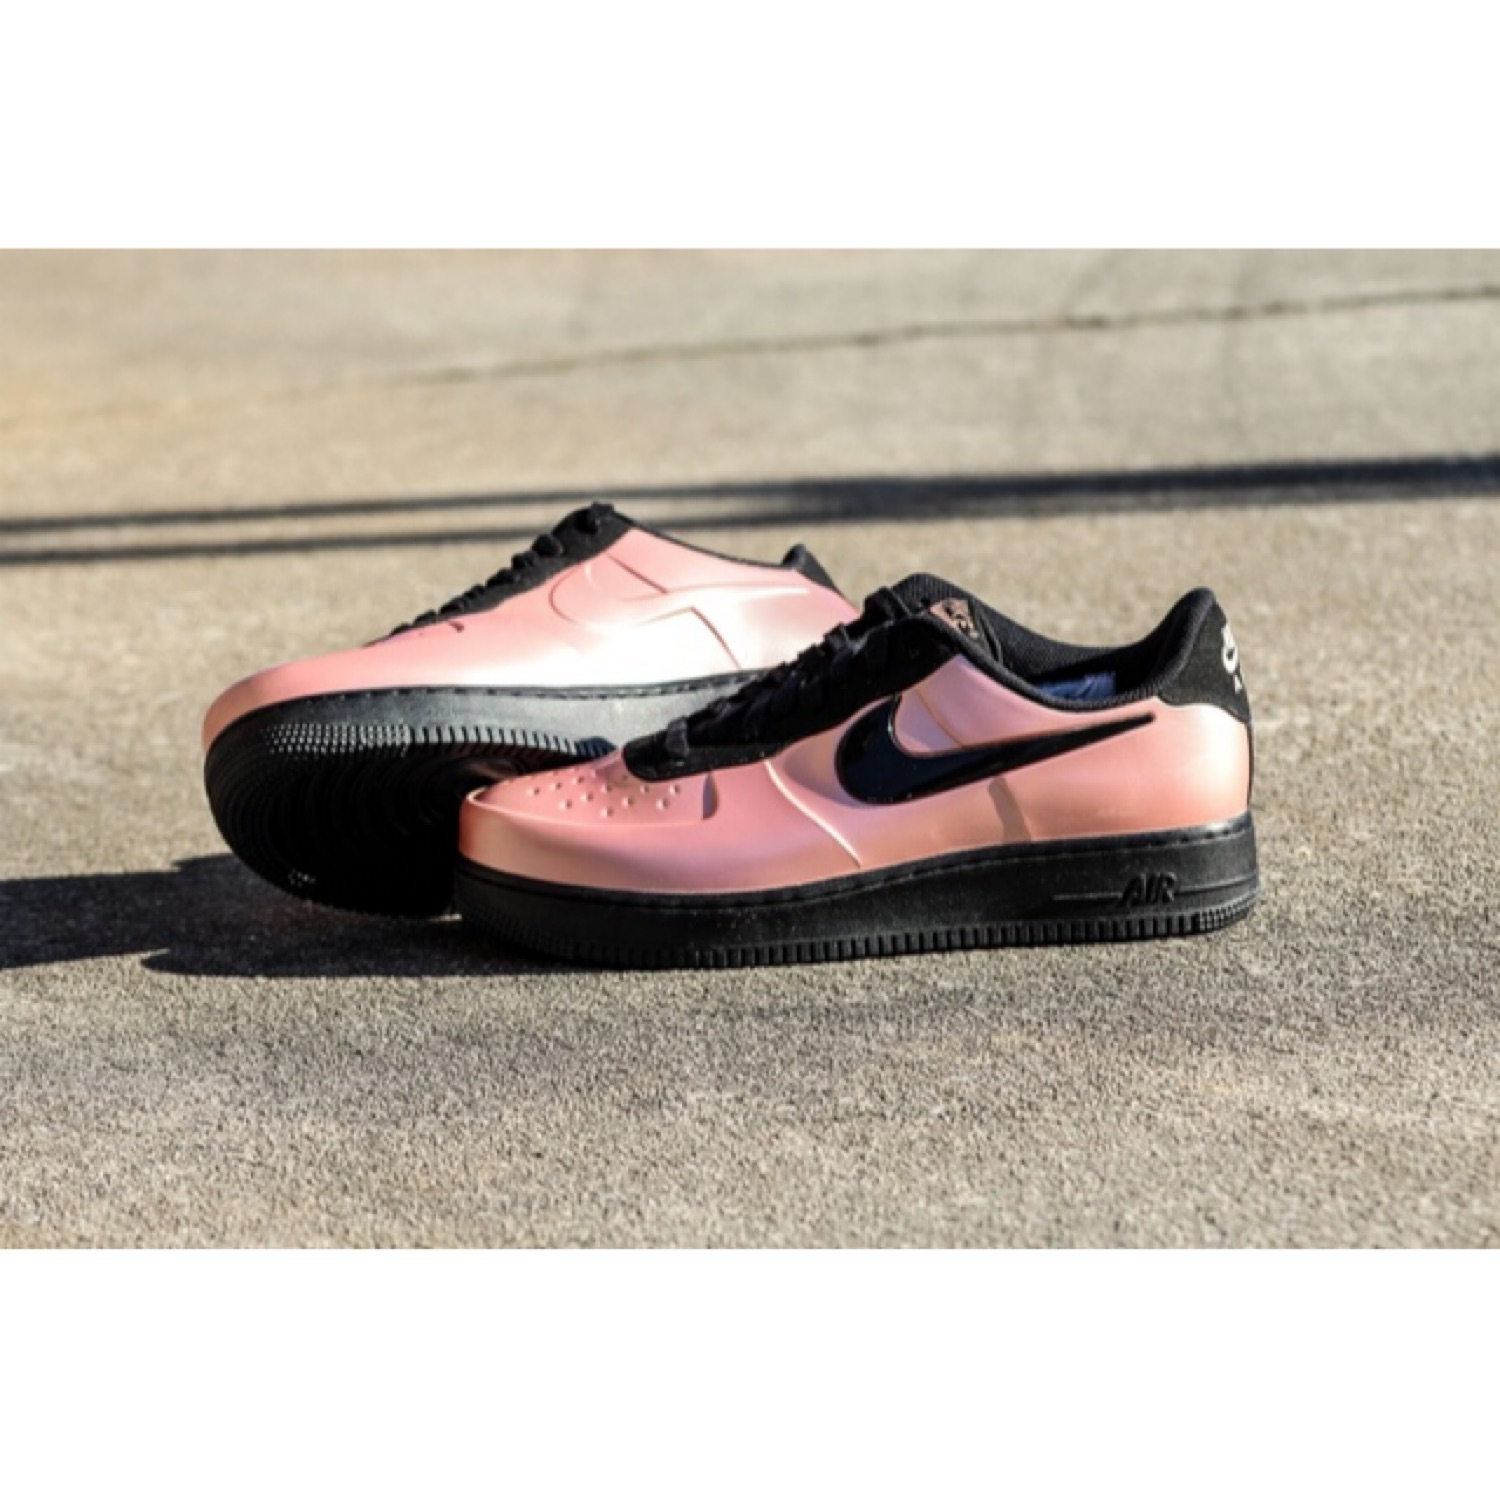 promo code f34eb 57fb6 Nike Air Force 1 Foamposite Pro Cup Coral Stardust